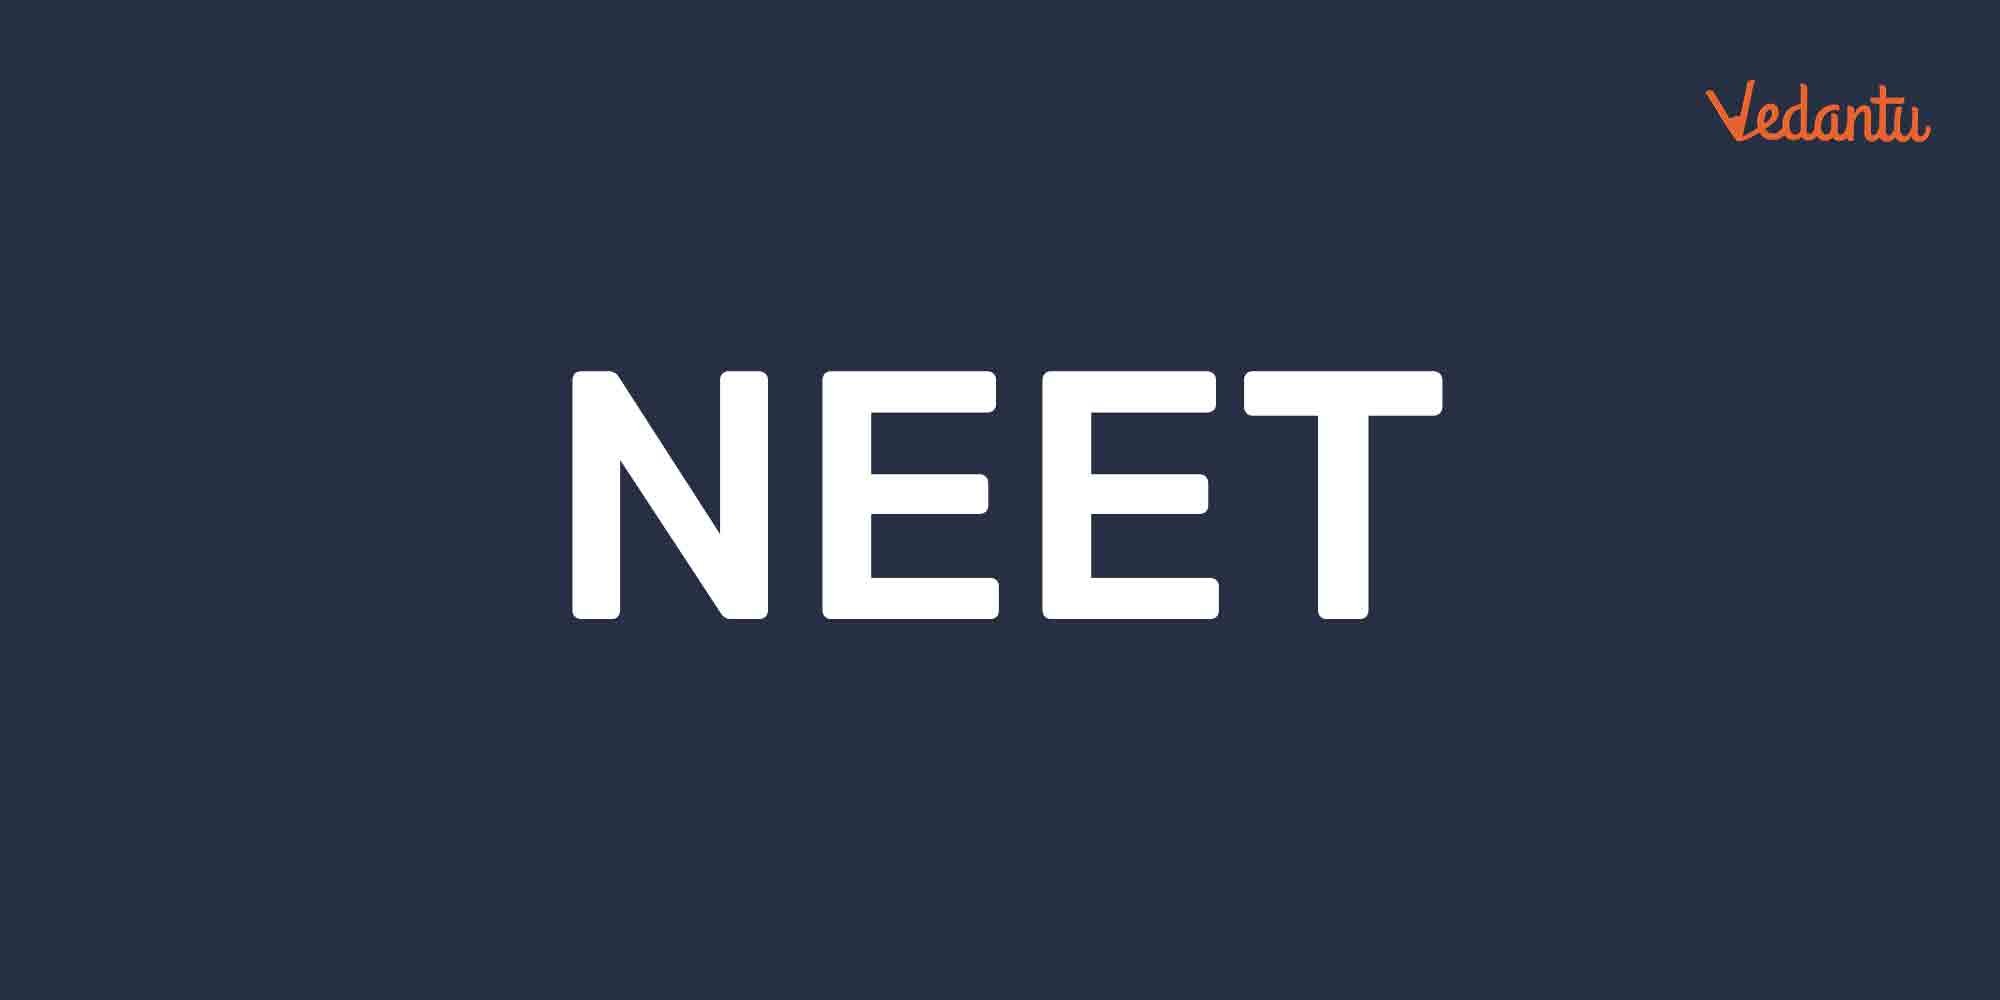 How To Prepare For NEET In Last Minute